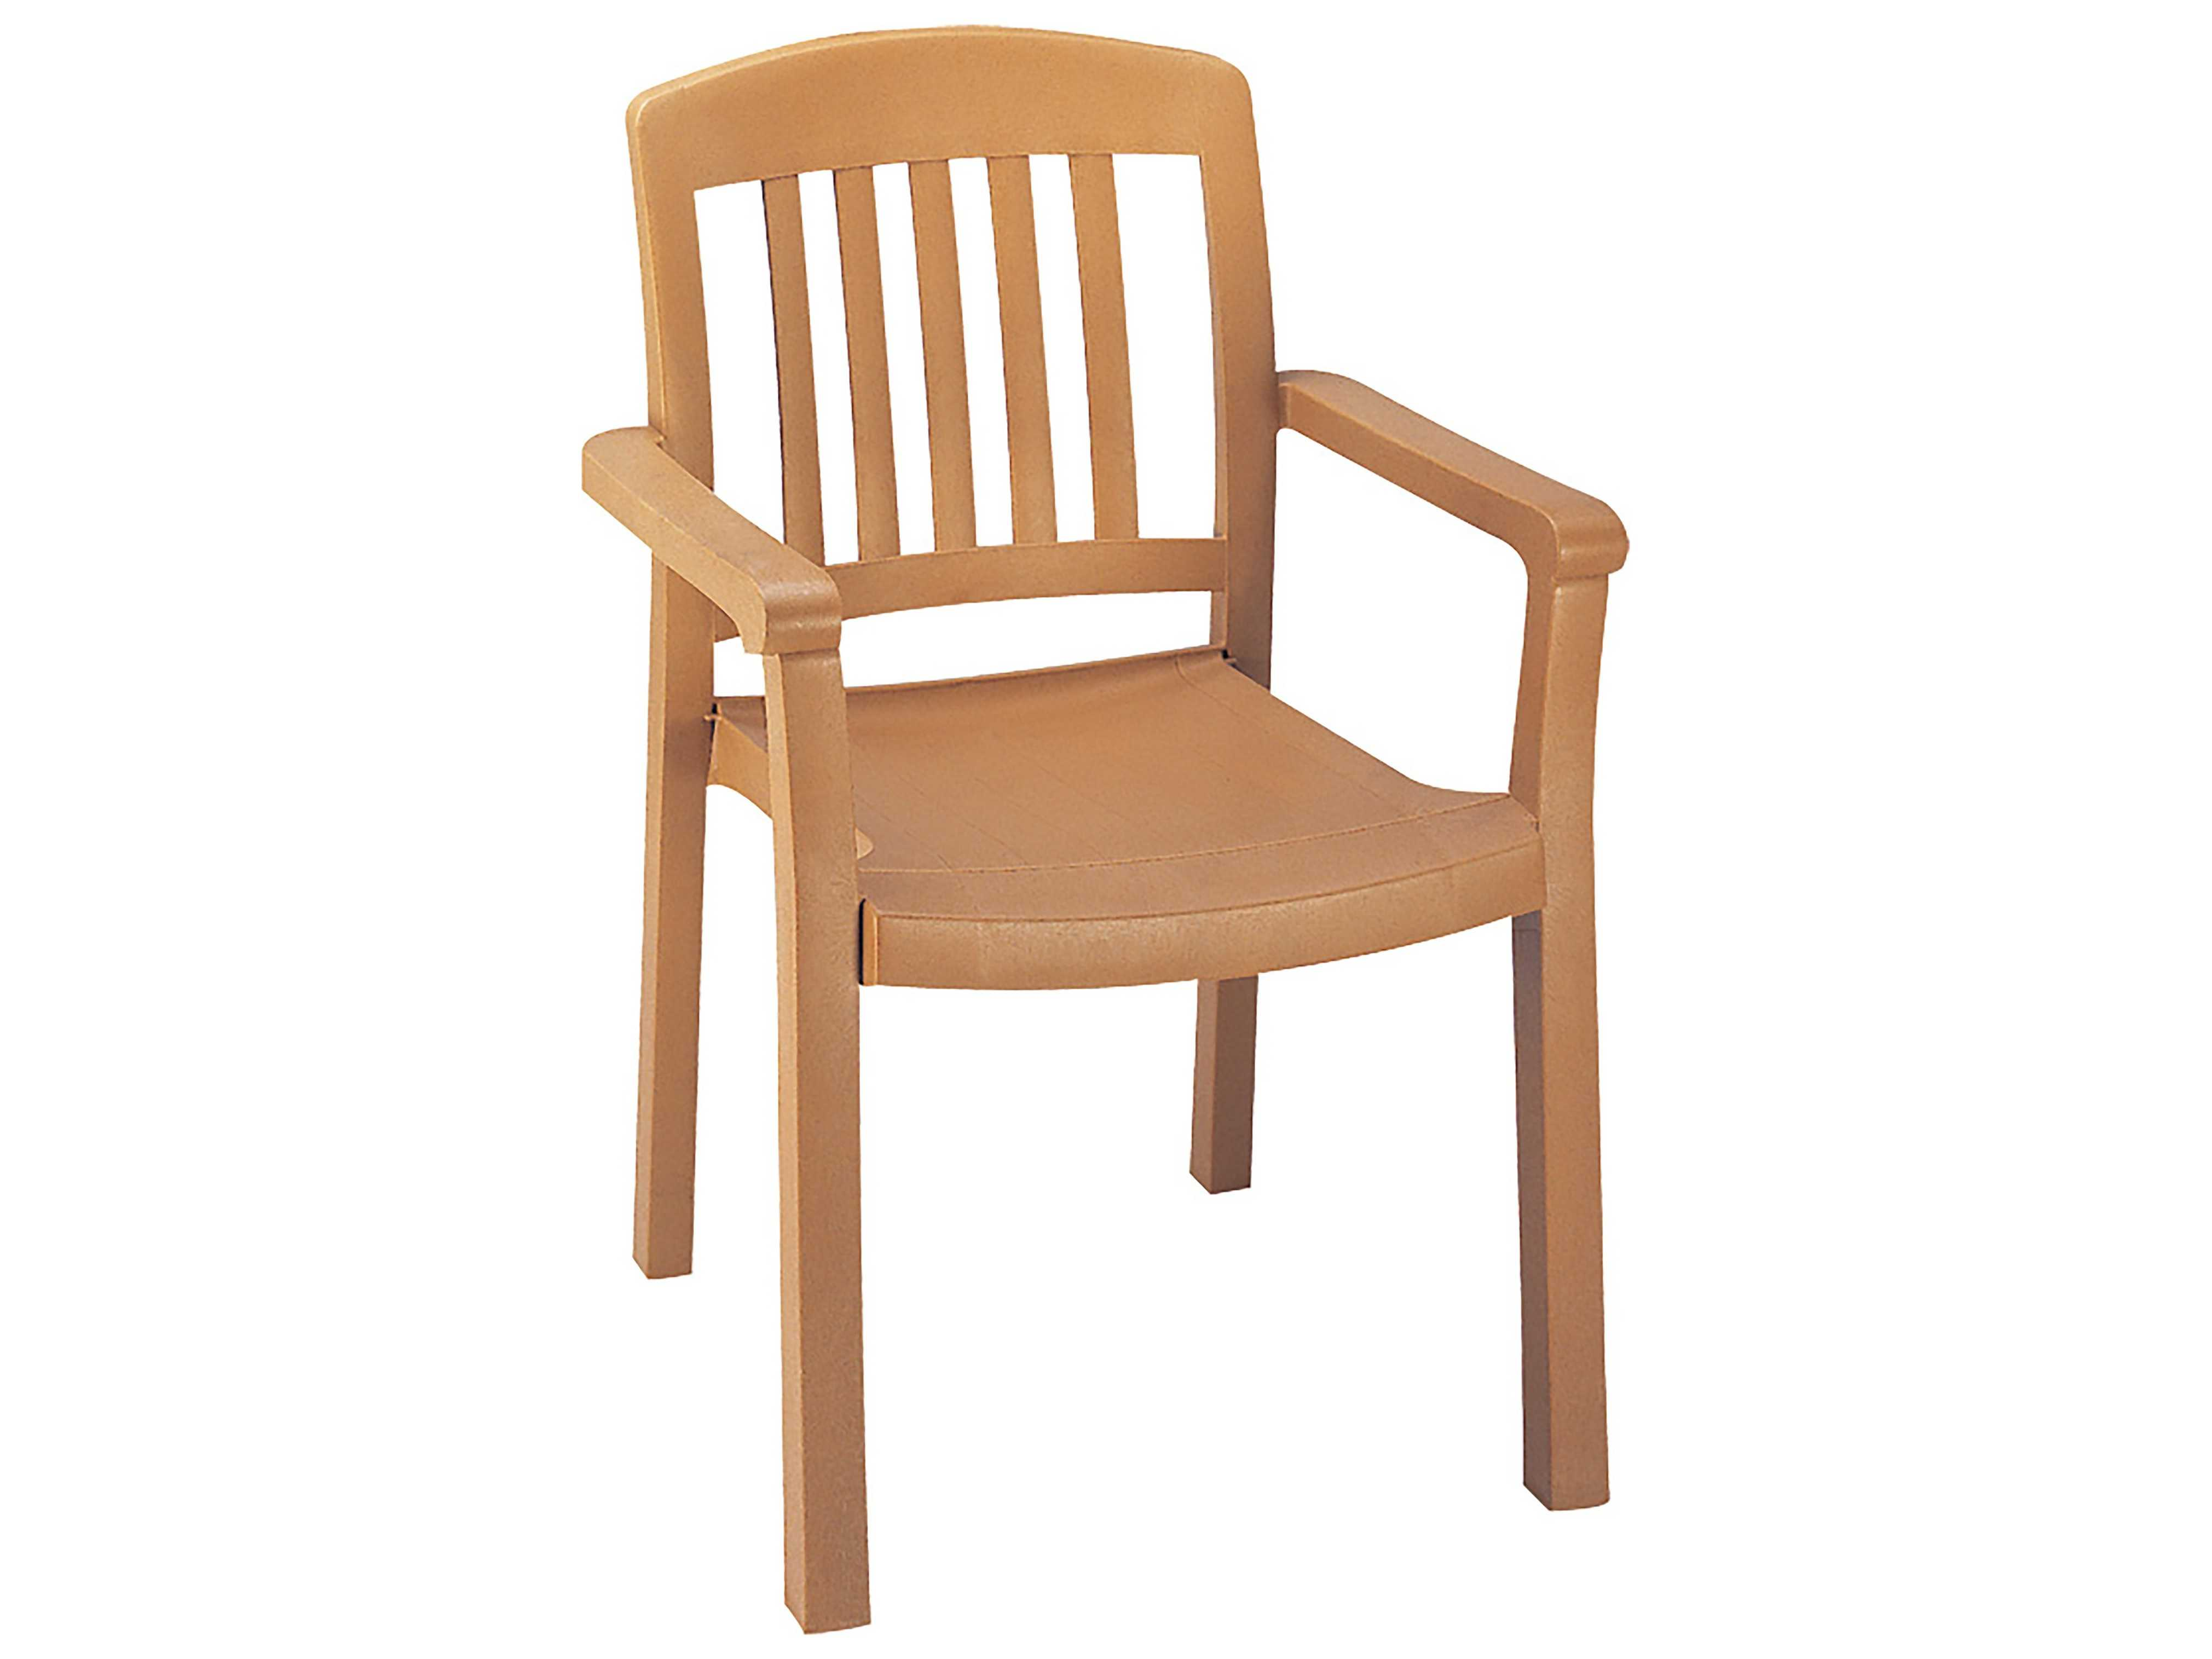 grosfillex madras lounge chairs design chair ebay atlantic classic stacking arm sold in 4